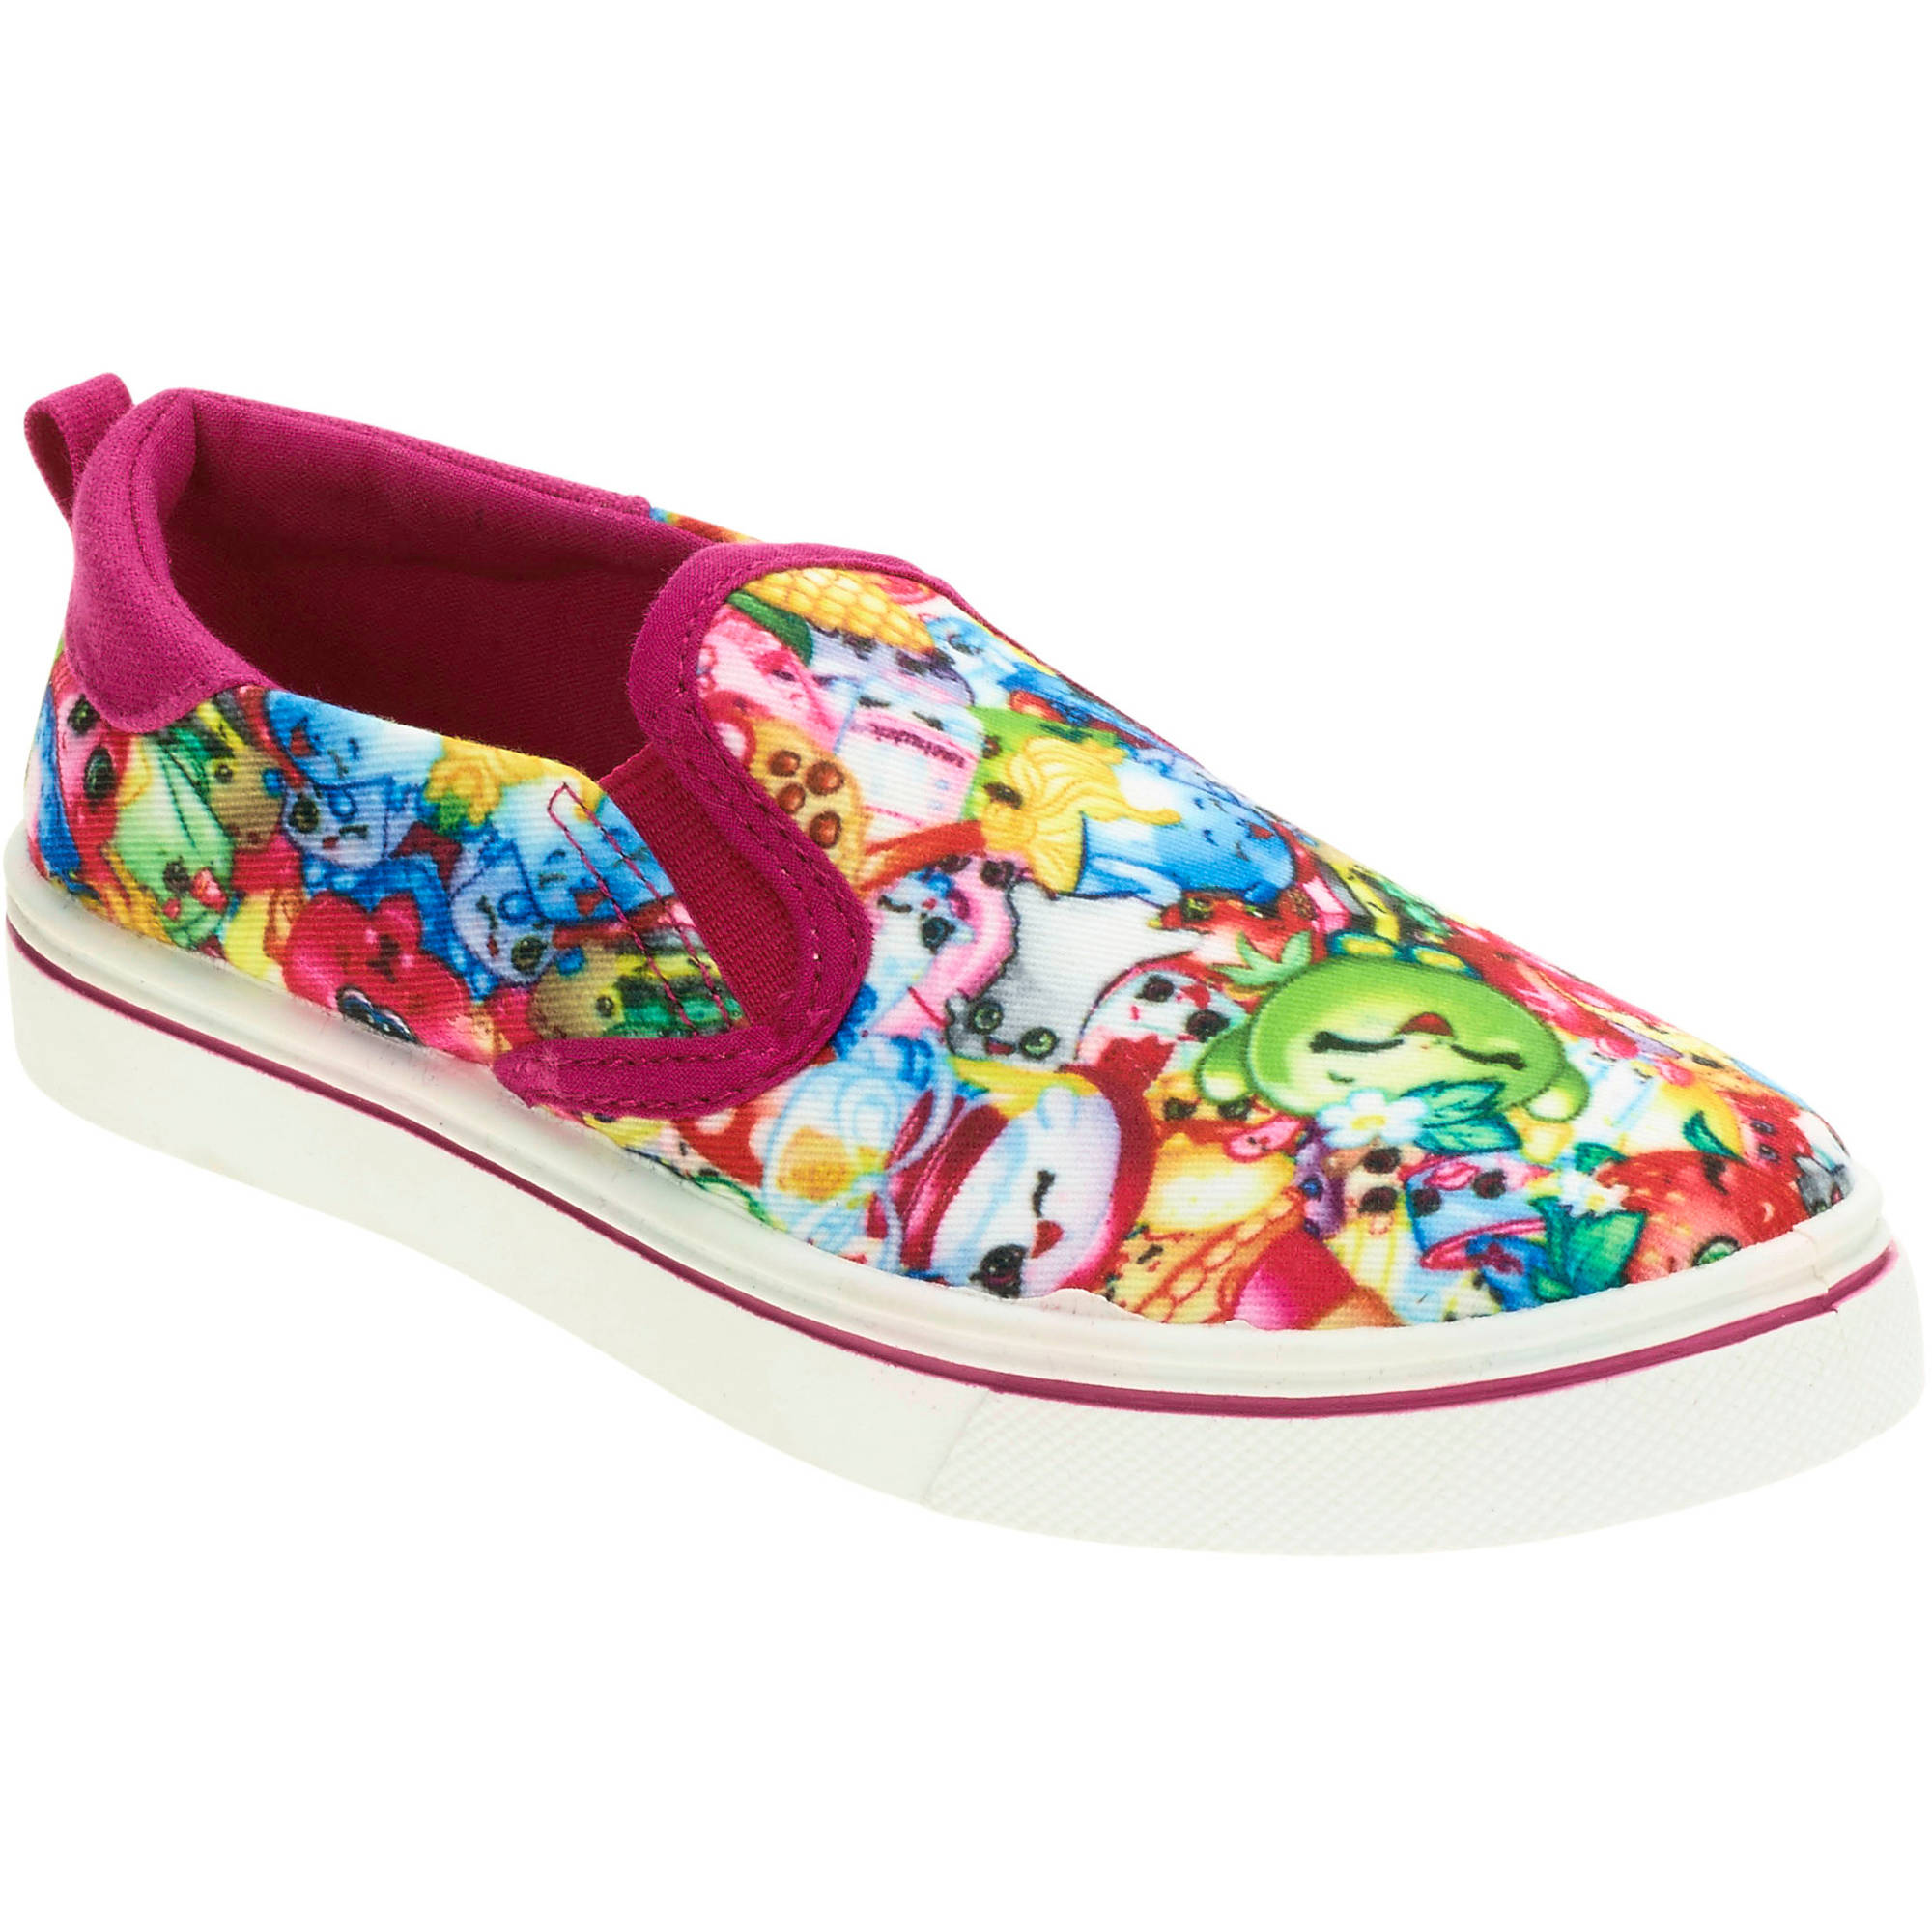 Shopkins Girls' Casual Slip On Shoe